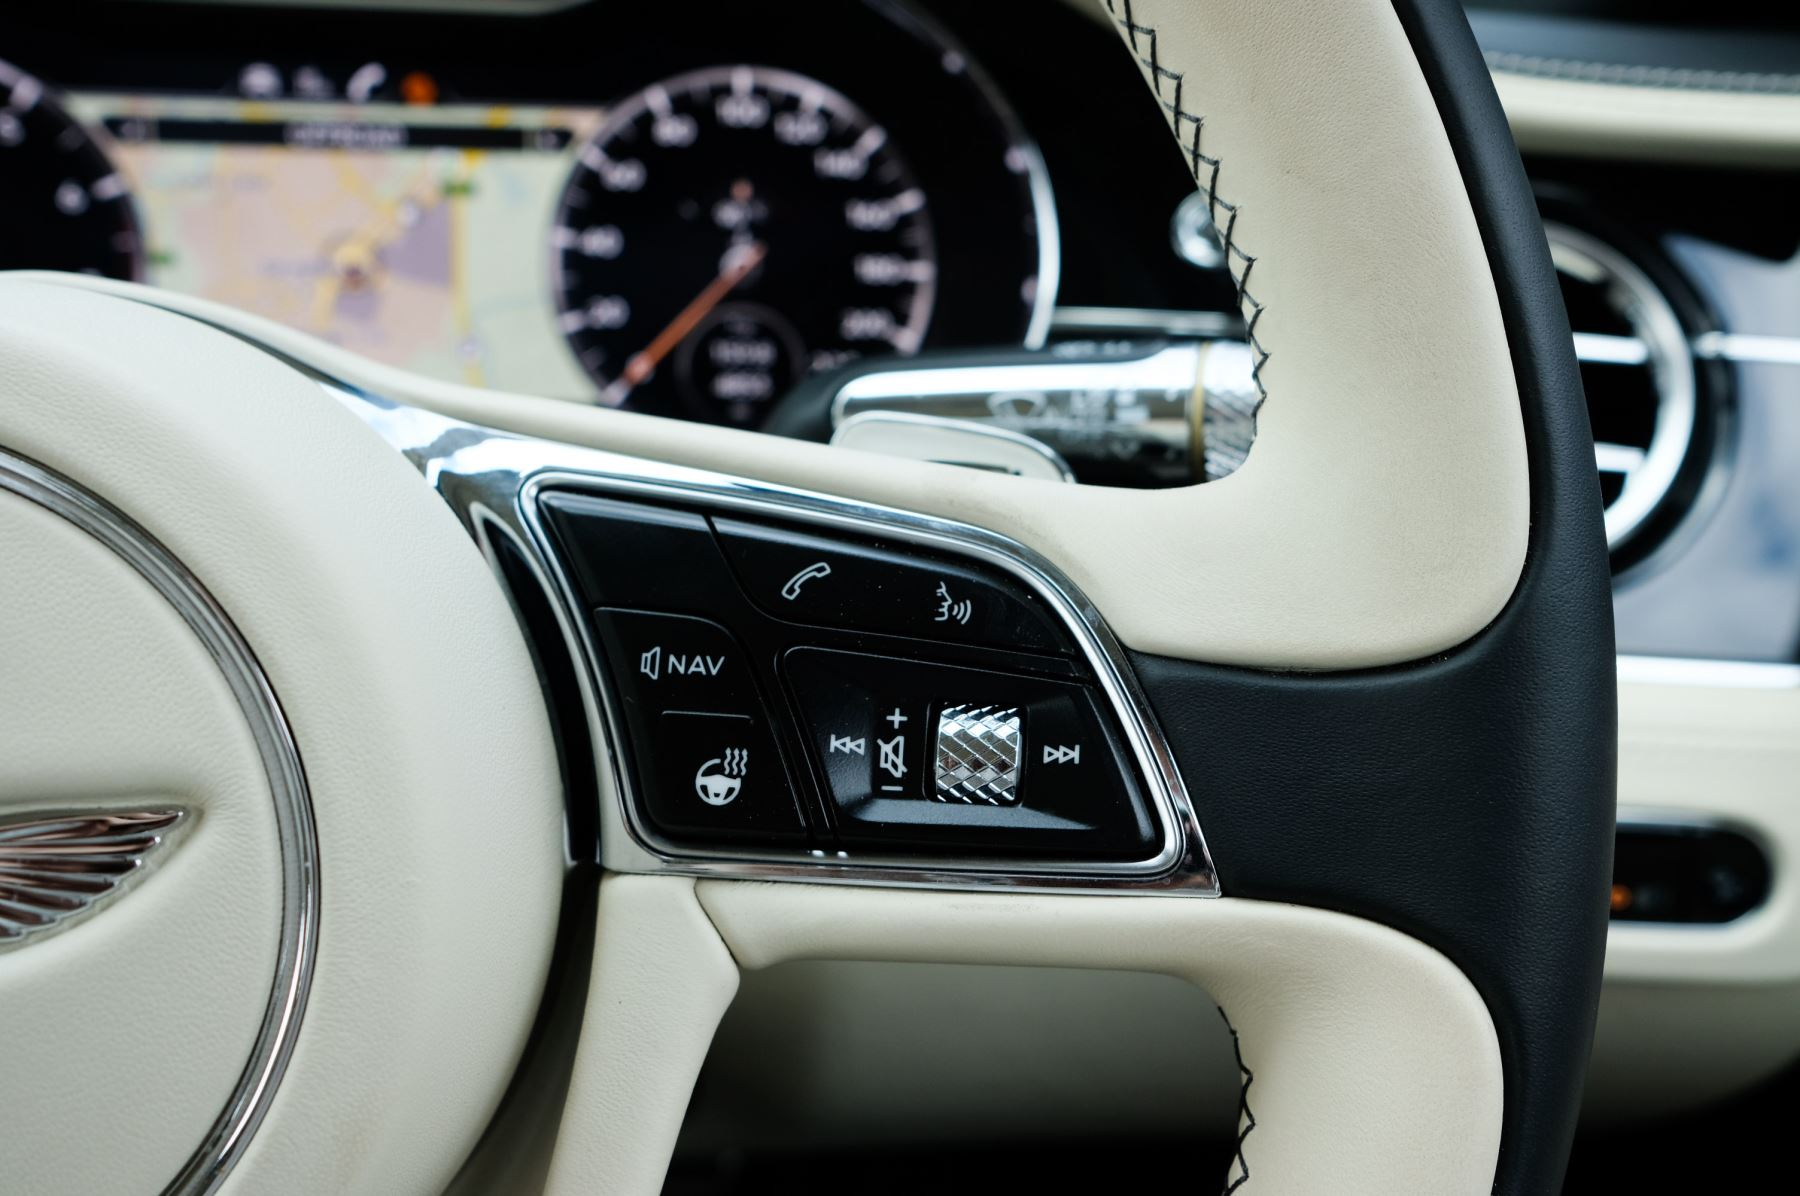 Bentley Continental GT 6.0 W12 1st Edition - Comfort Seating - Touring Specification image 26